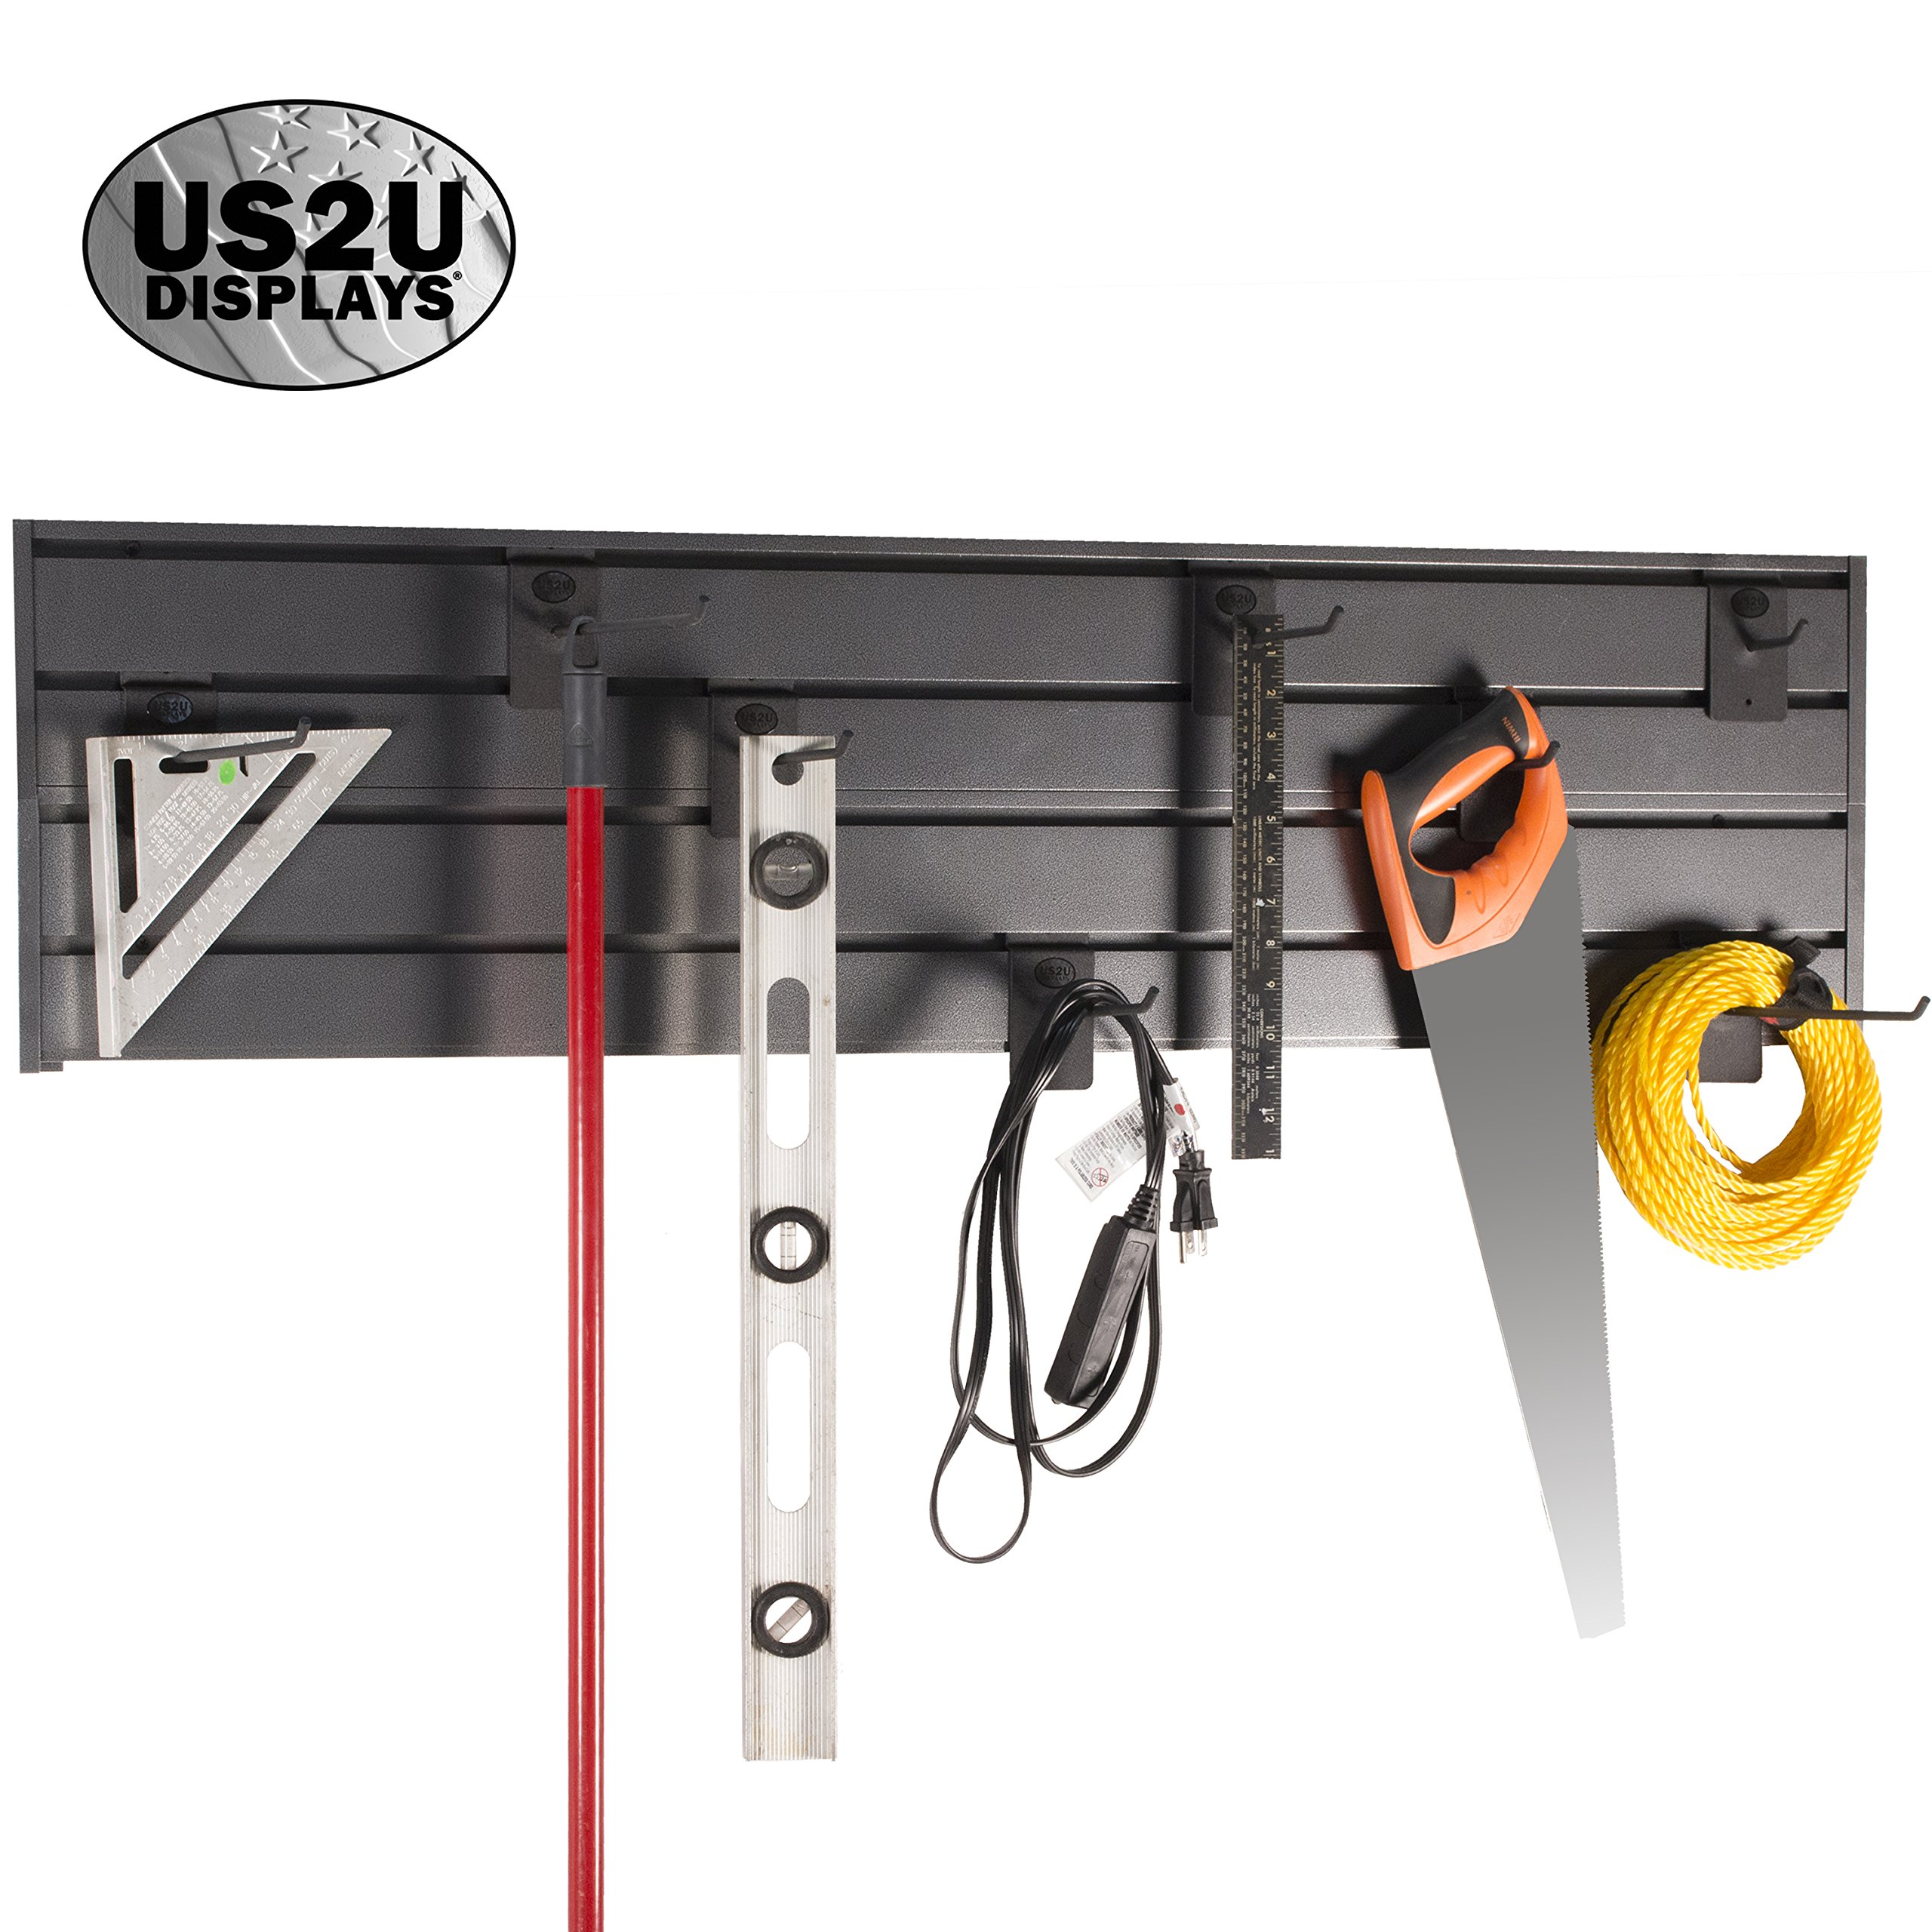 US2U Displays Garage Storage Slatwall System - 4x Slat Wall Tool Organizer 4' Extruded Aluminum Stackable Rails for Shelving, Hooks and Organization USSW2-S Silver